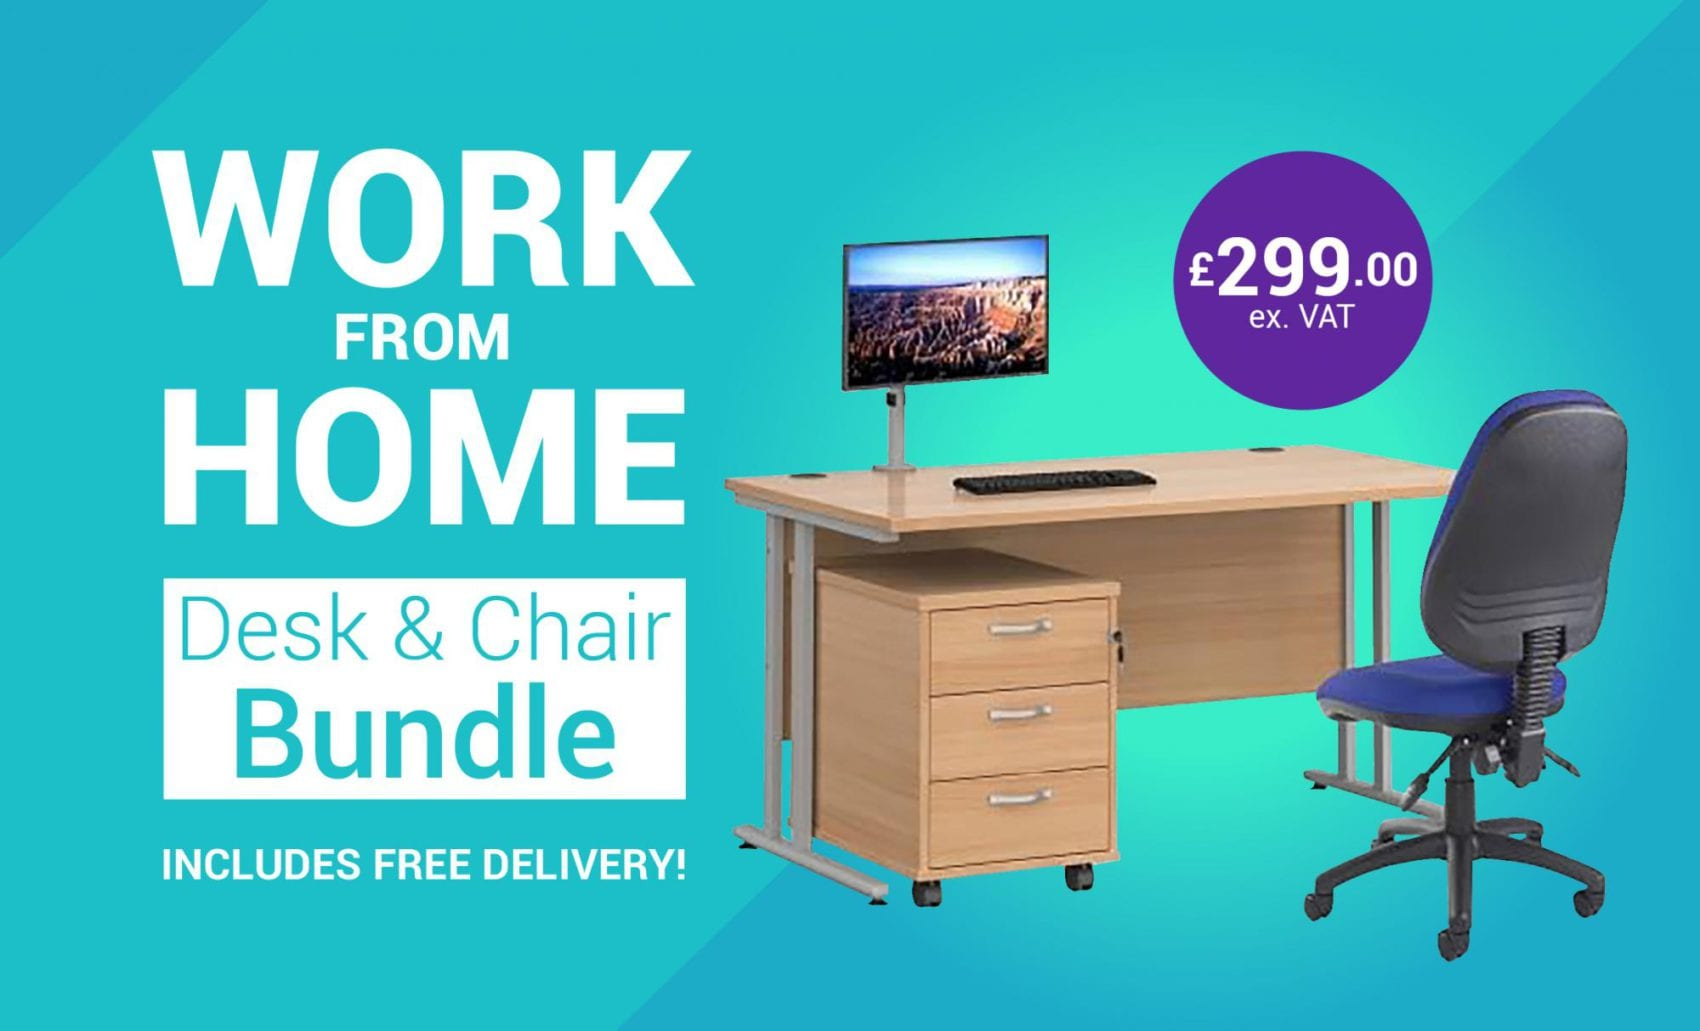 Work from Home Desk & Chair Bundle  - Free delivery